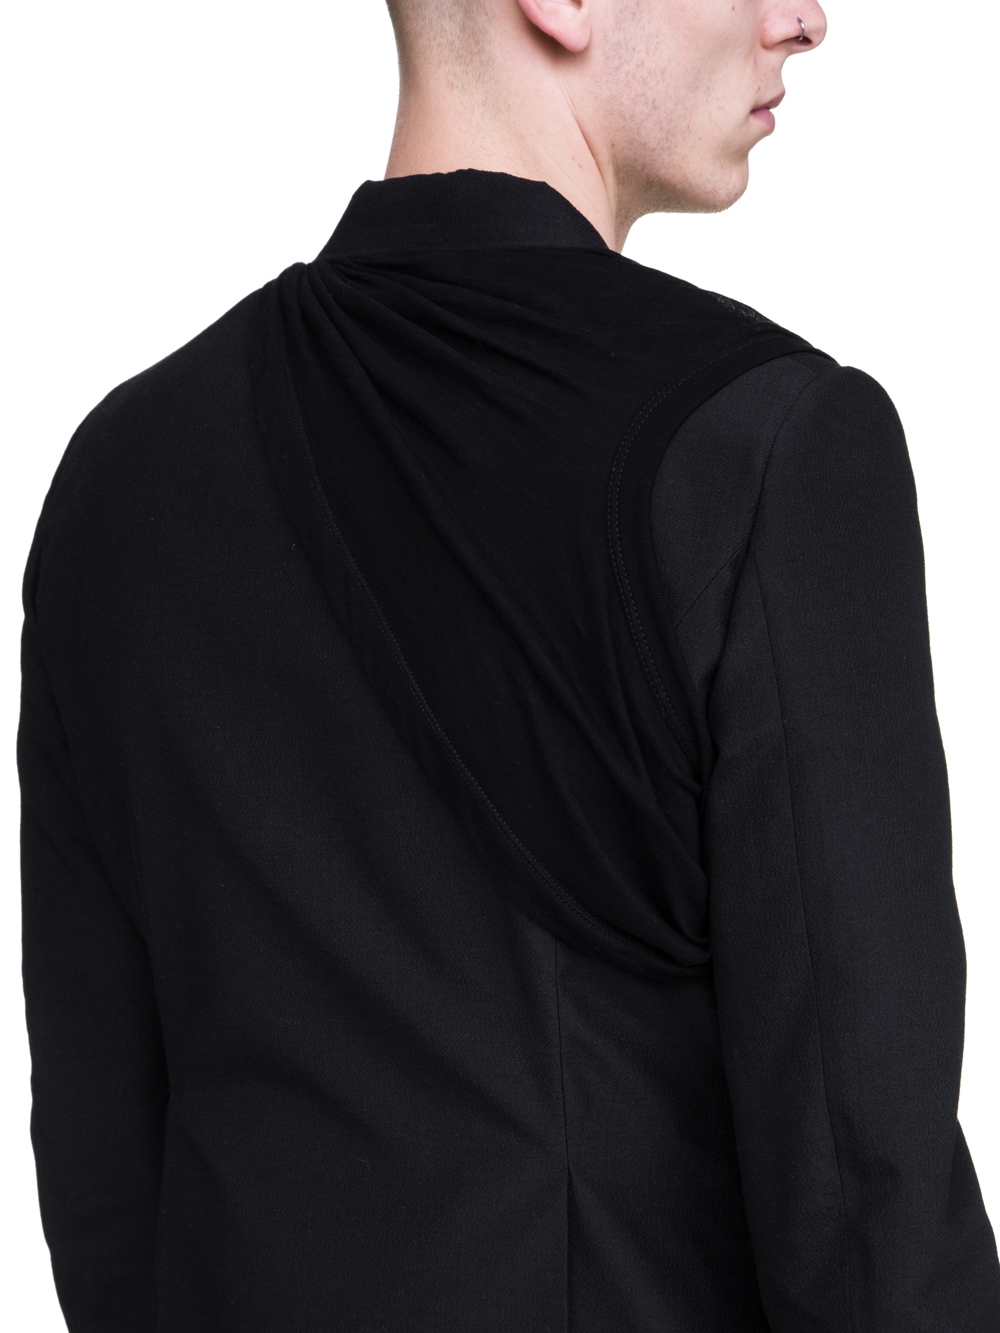 RICK OWENS SS19 BABEL NEW SOFT BLAZER IN BLACK